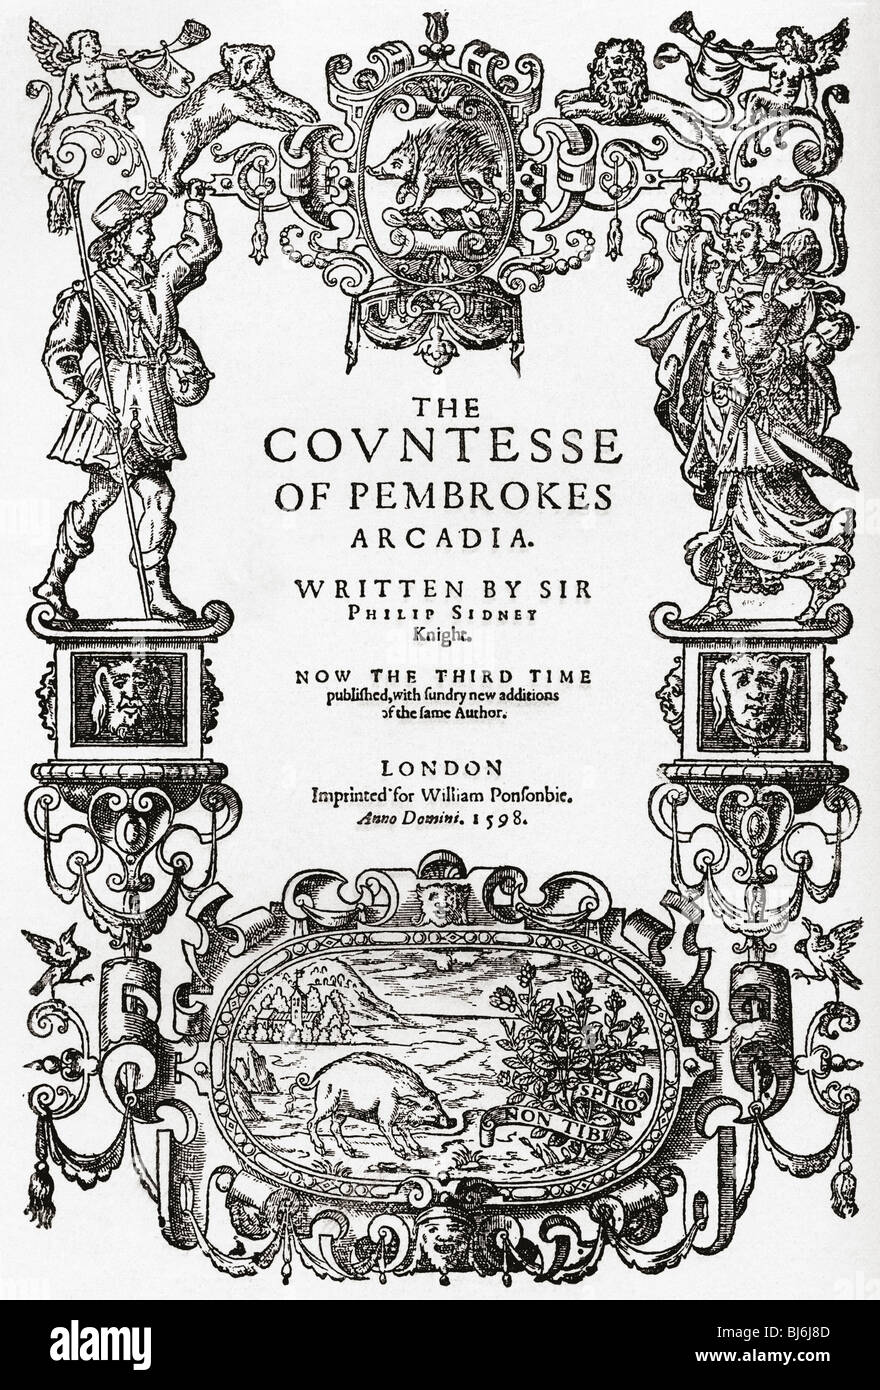 Frontispiece to 'The Countess of Pembroke's Arcadia' by Sir Philip Sidney, 1598. - Stock Image